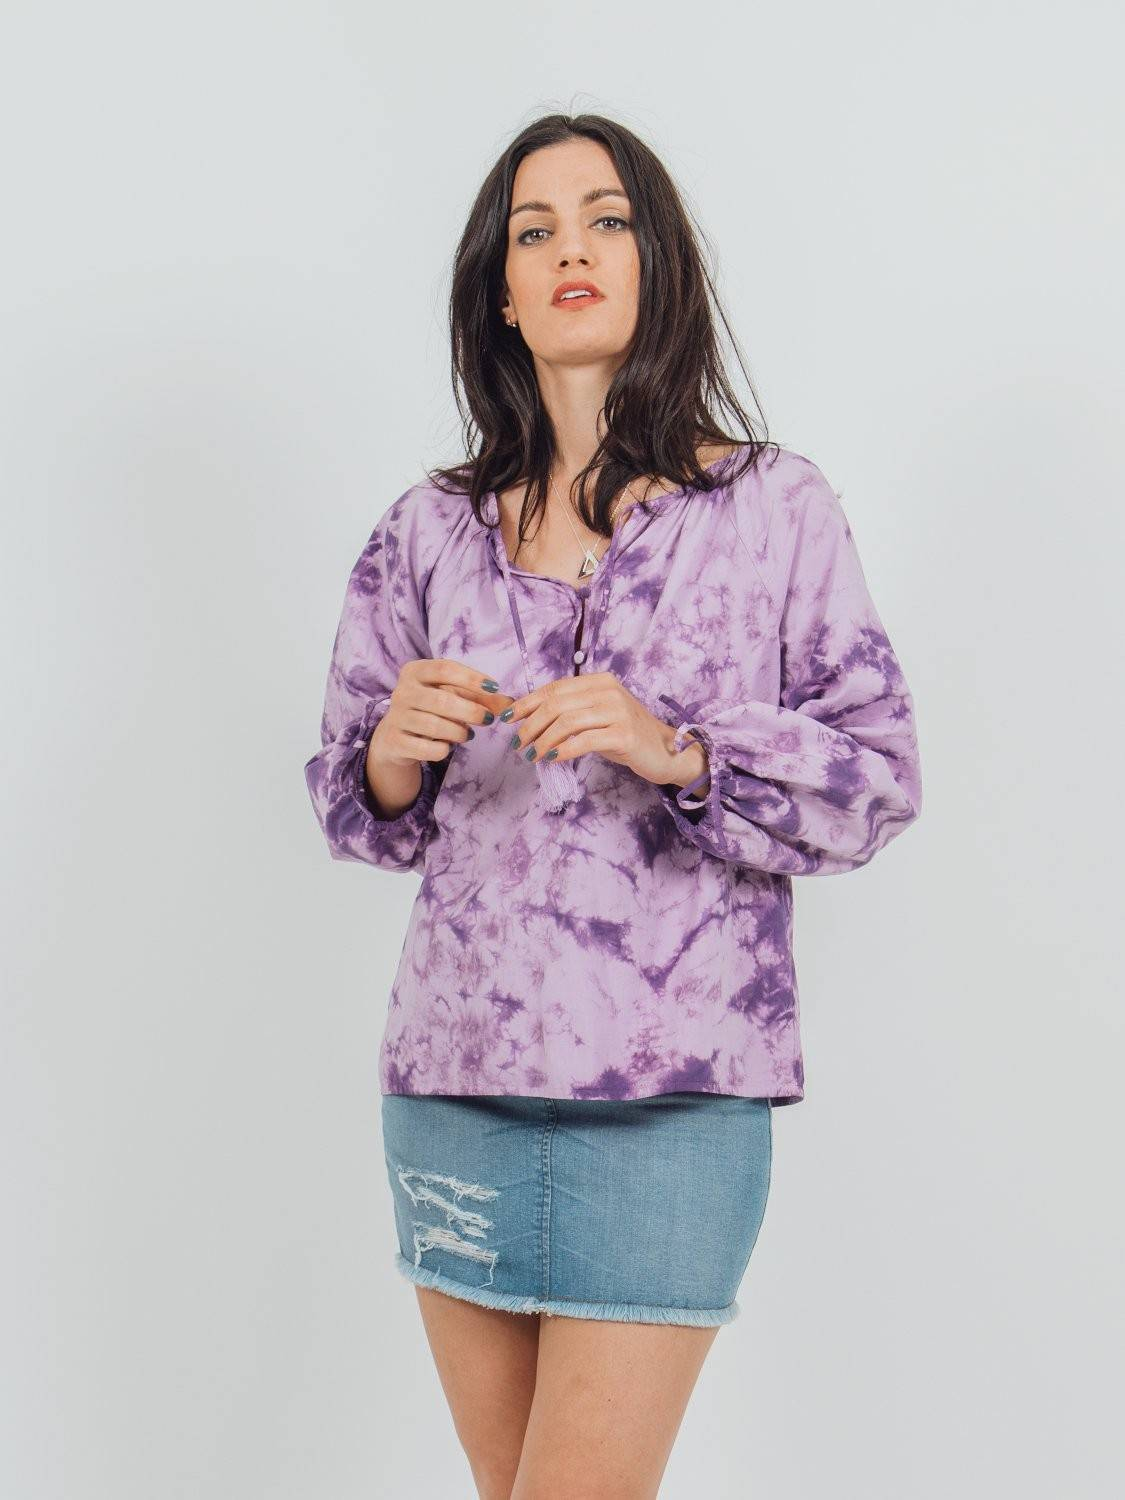 volumious purple tie-dye long-sleeved blouse with drawstring cuffs and round neck